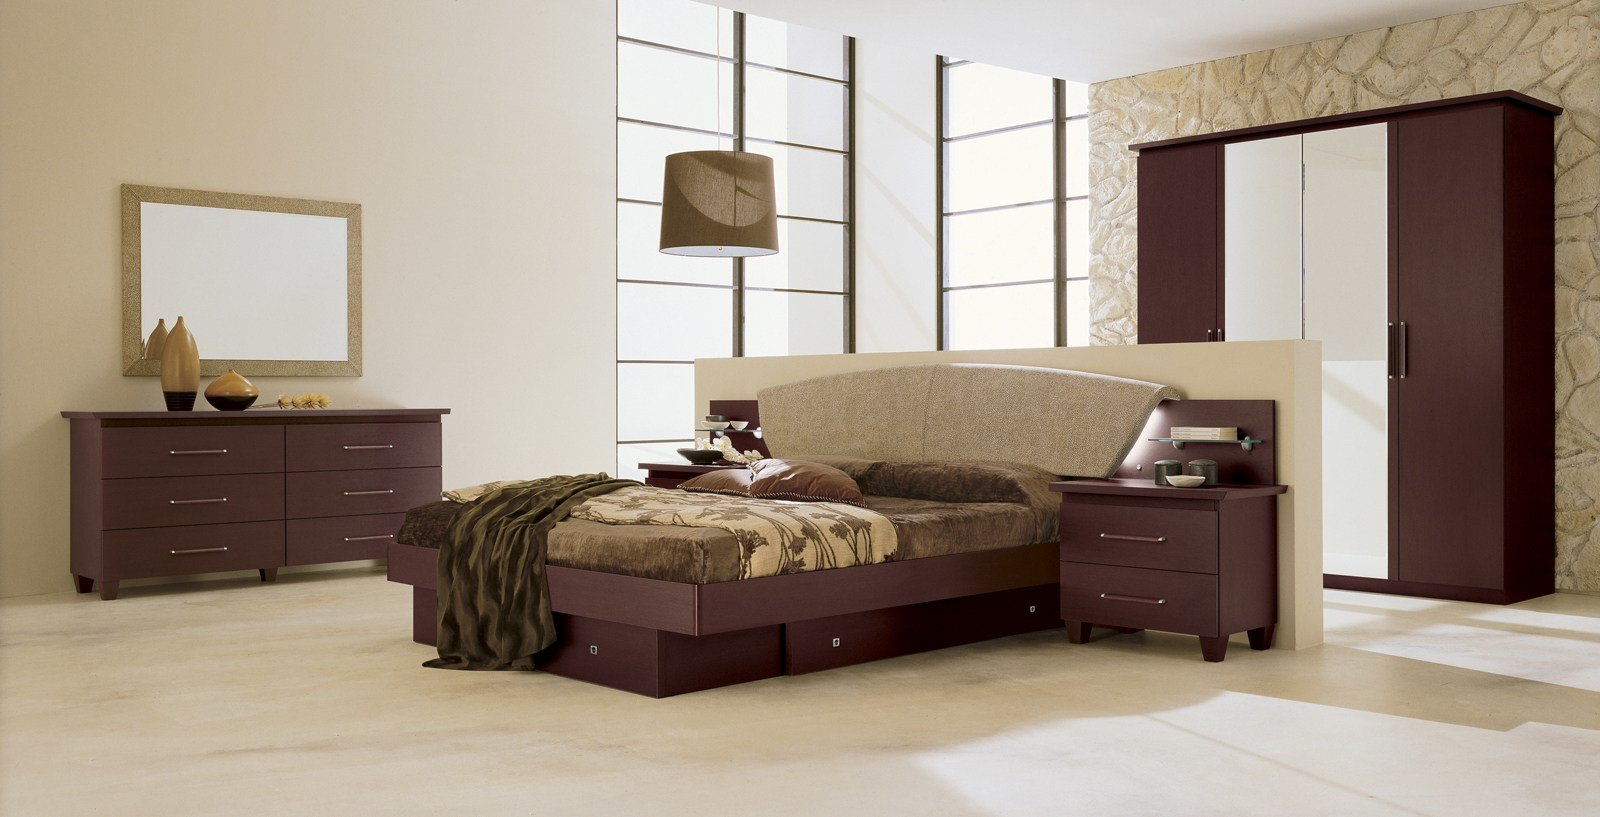 Best Miss Italia Composition 3 Camelgroup Italy Modern Bedrooms Bedroom Furniture With Pictures